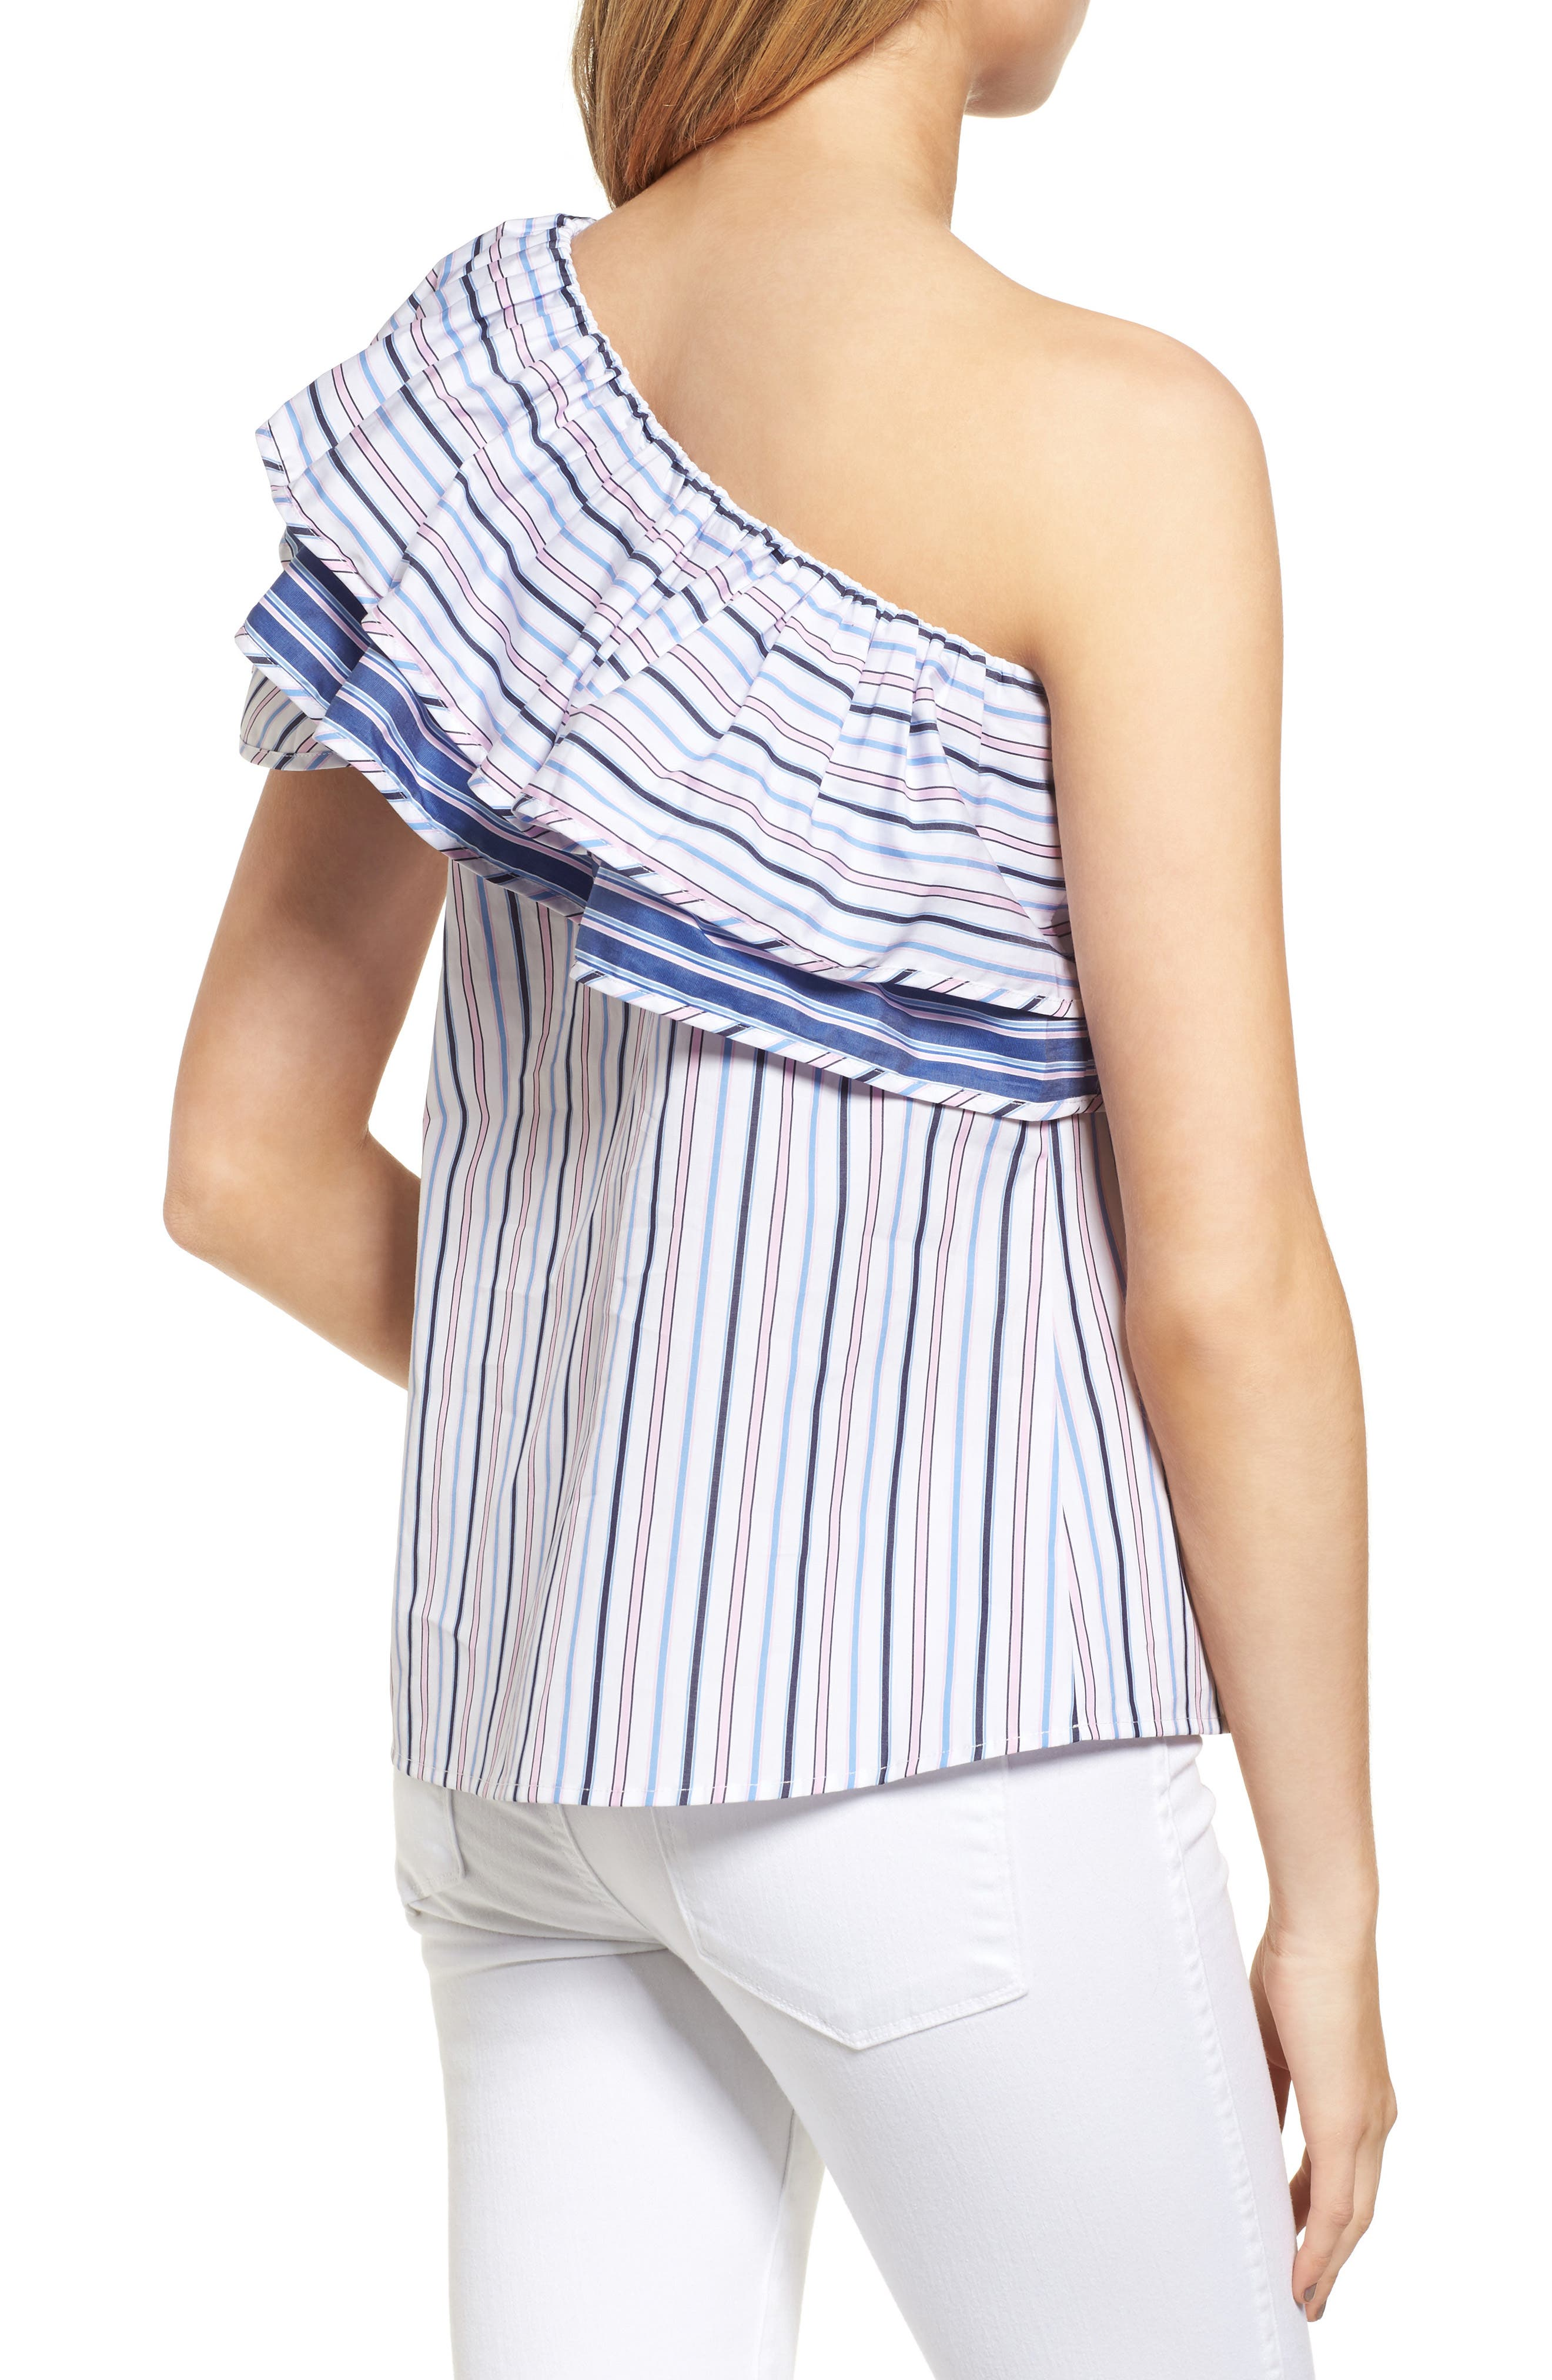 Mary One-Shoulder Top,                             Alternate thumbnail 2, color,                             400